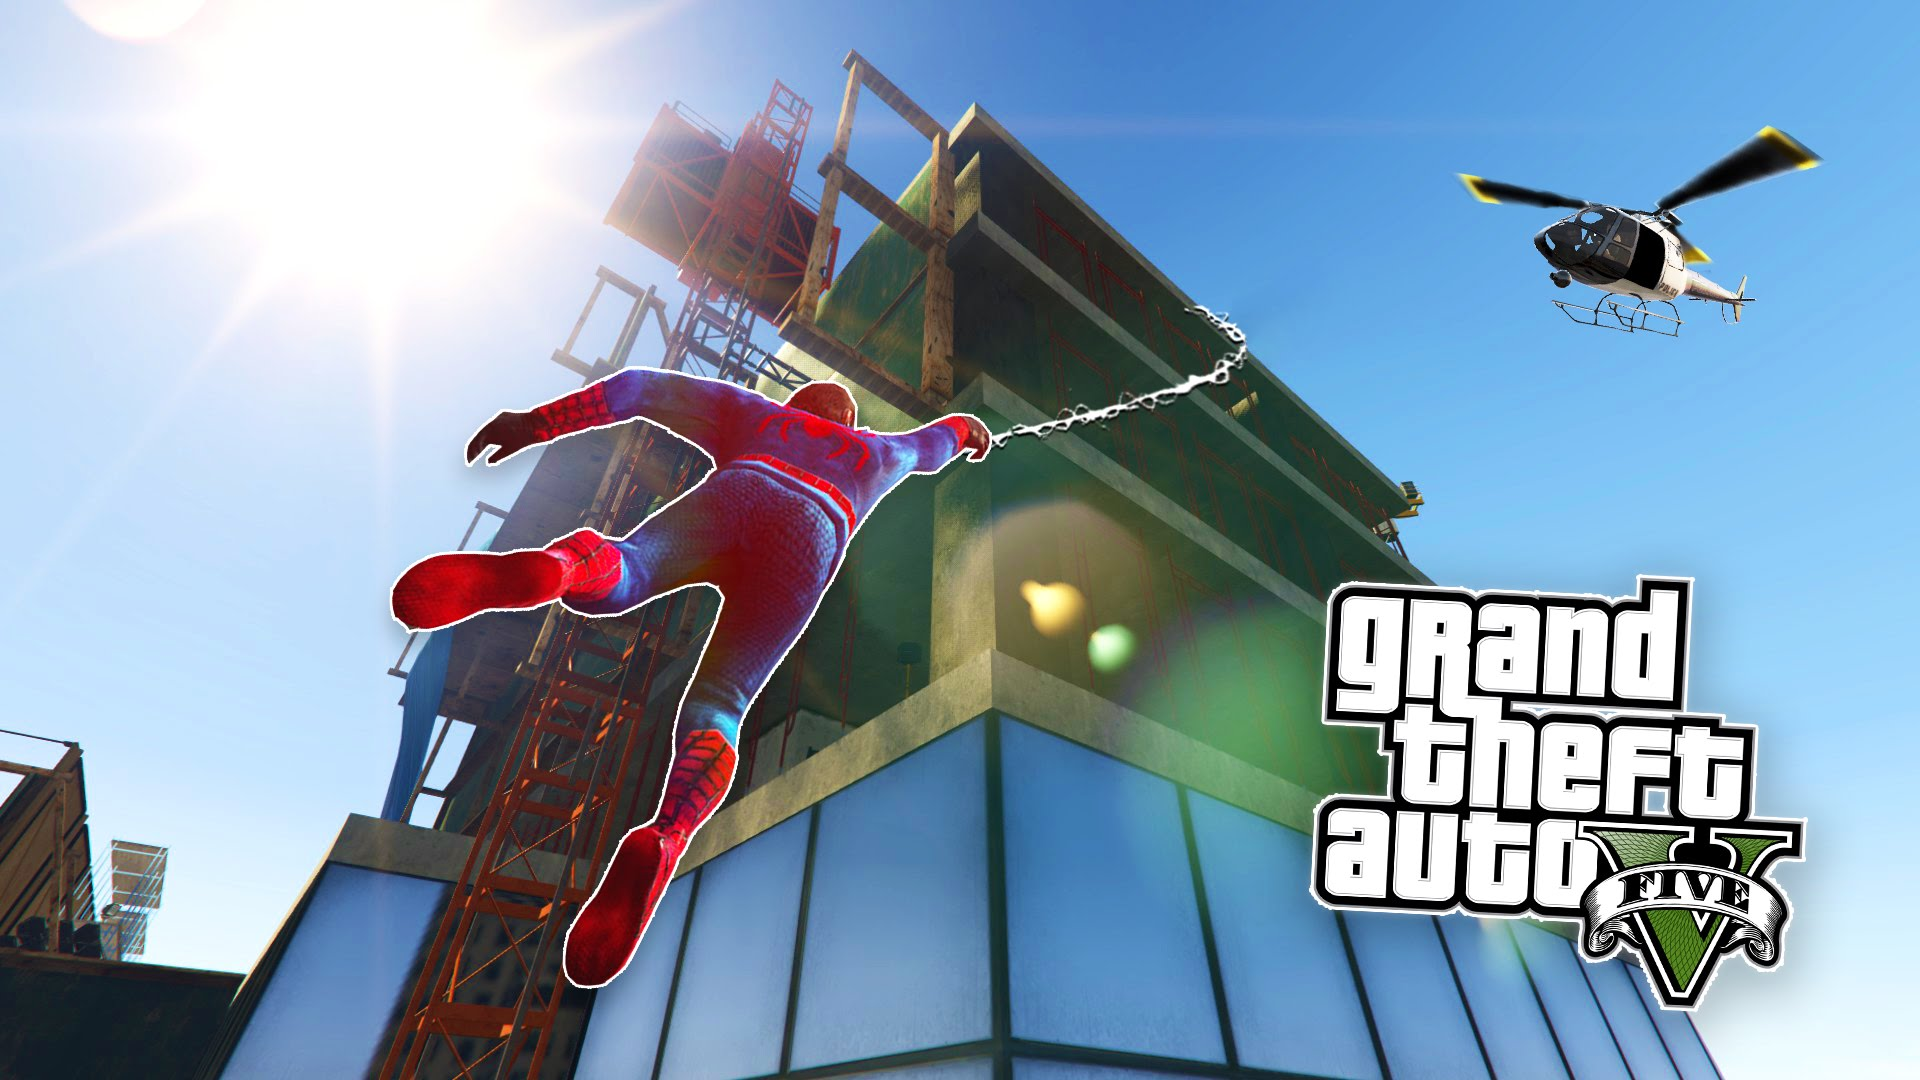 Photo of Just Cause Grapple Gun acum si in GTA 5!